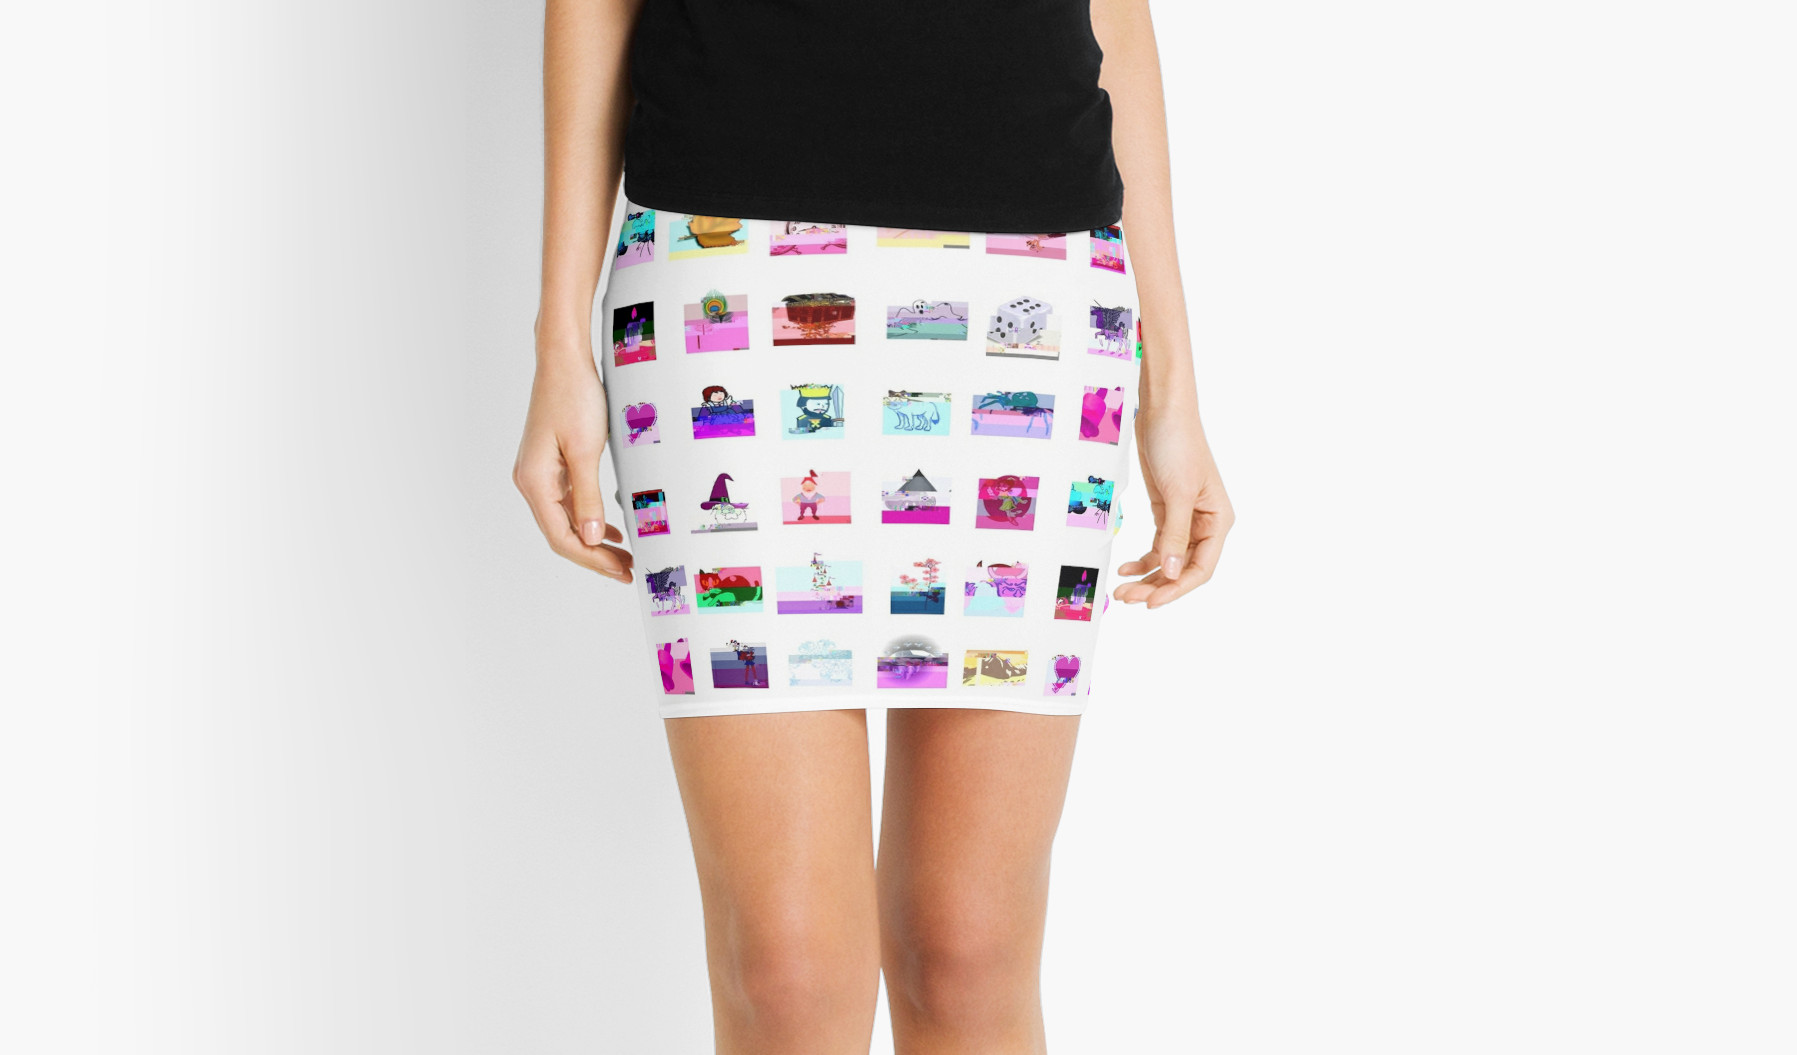 Glitch clipart pencil By Skirts Theme